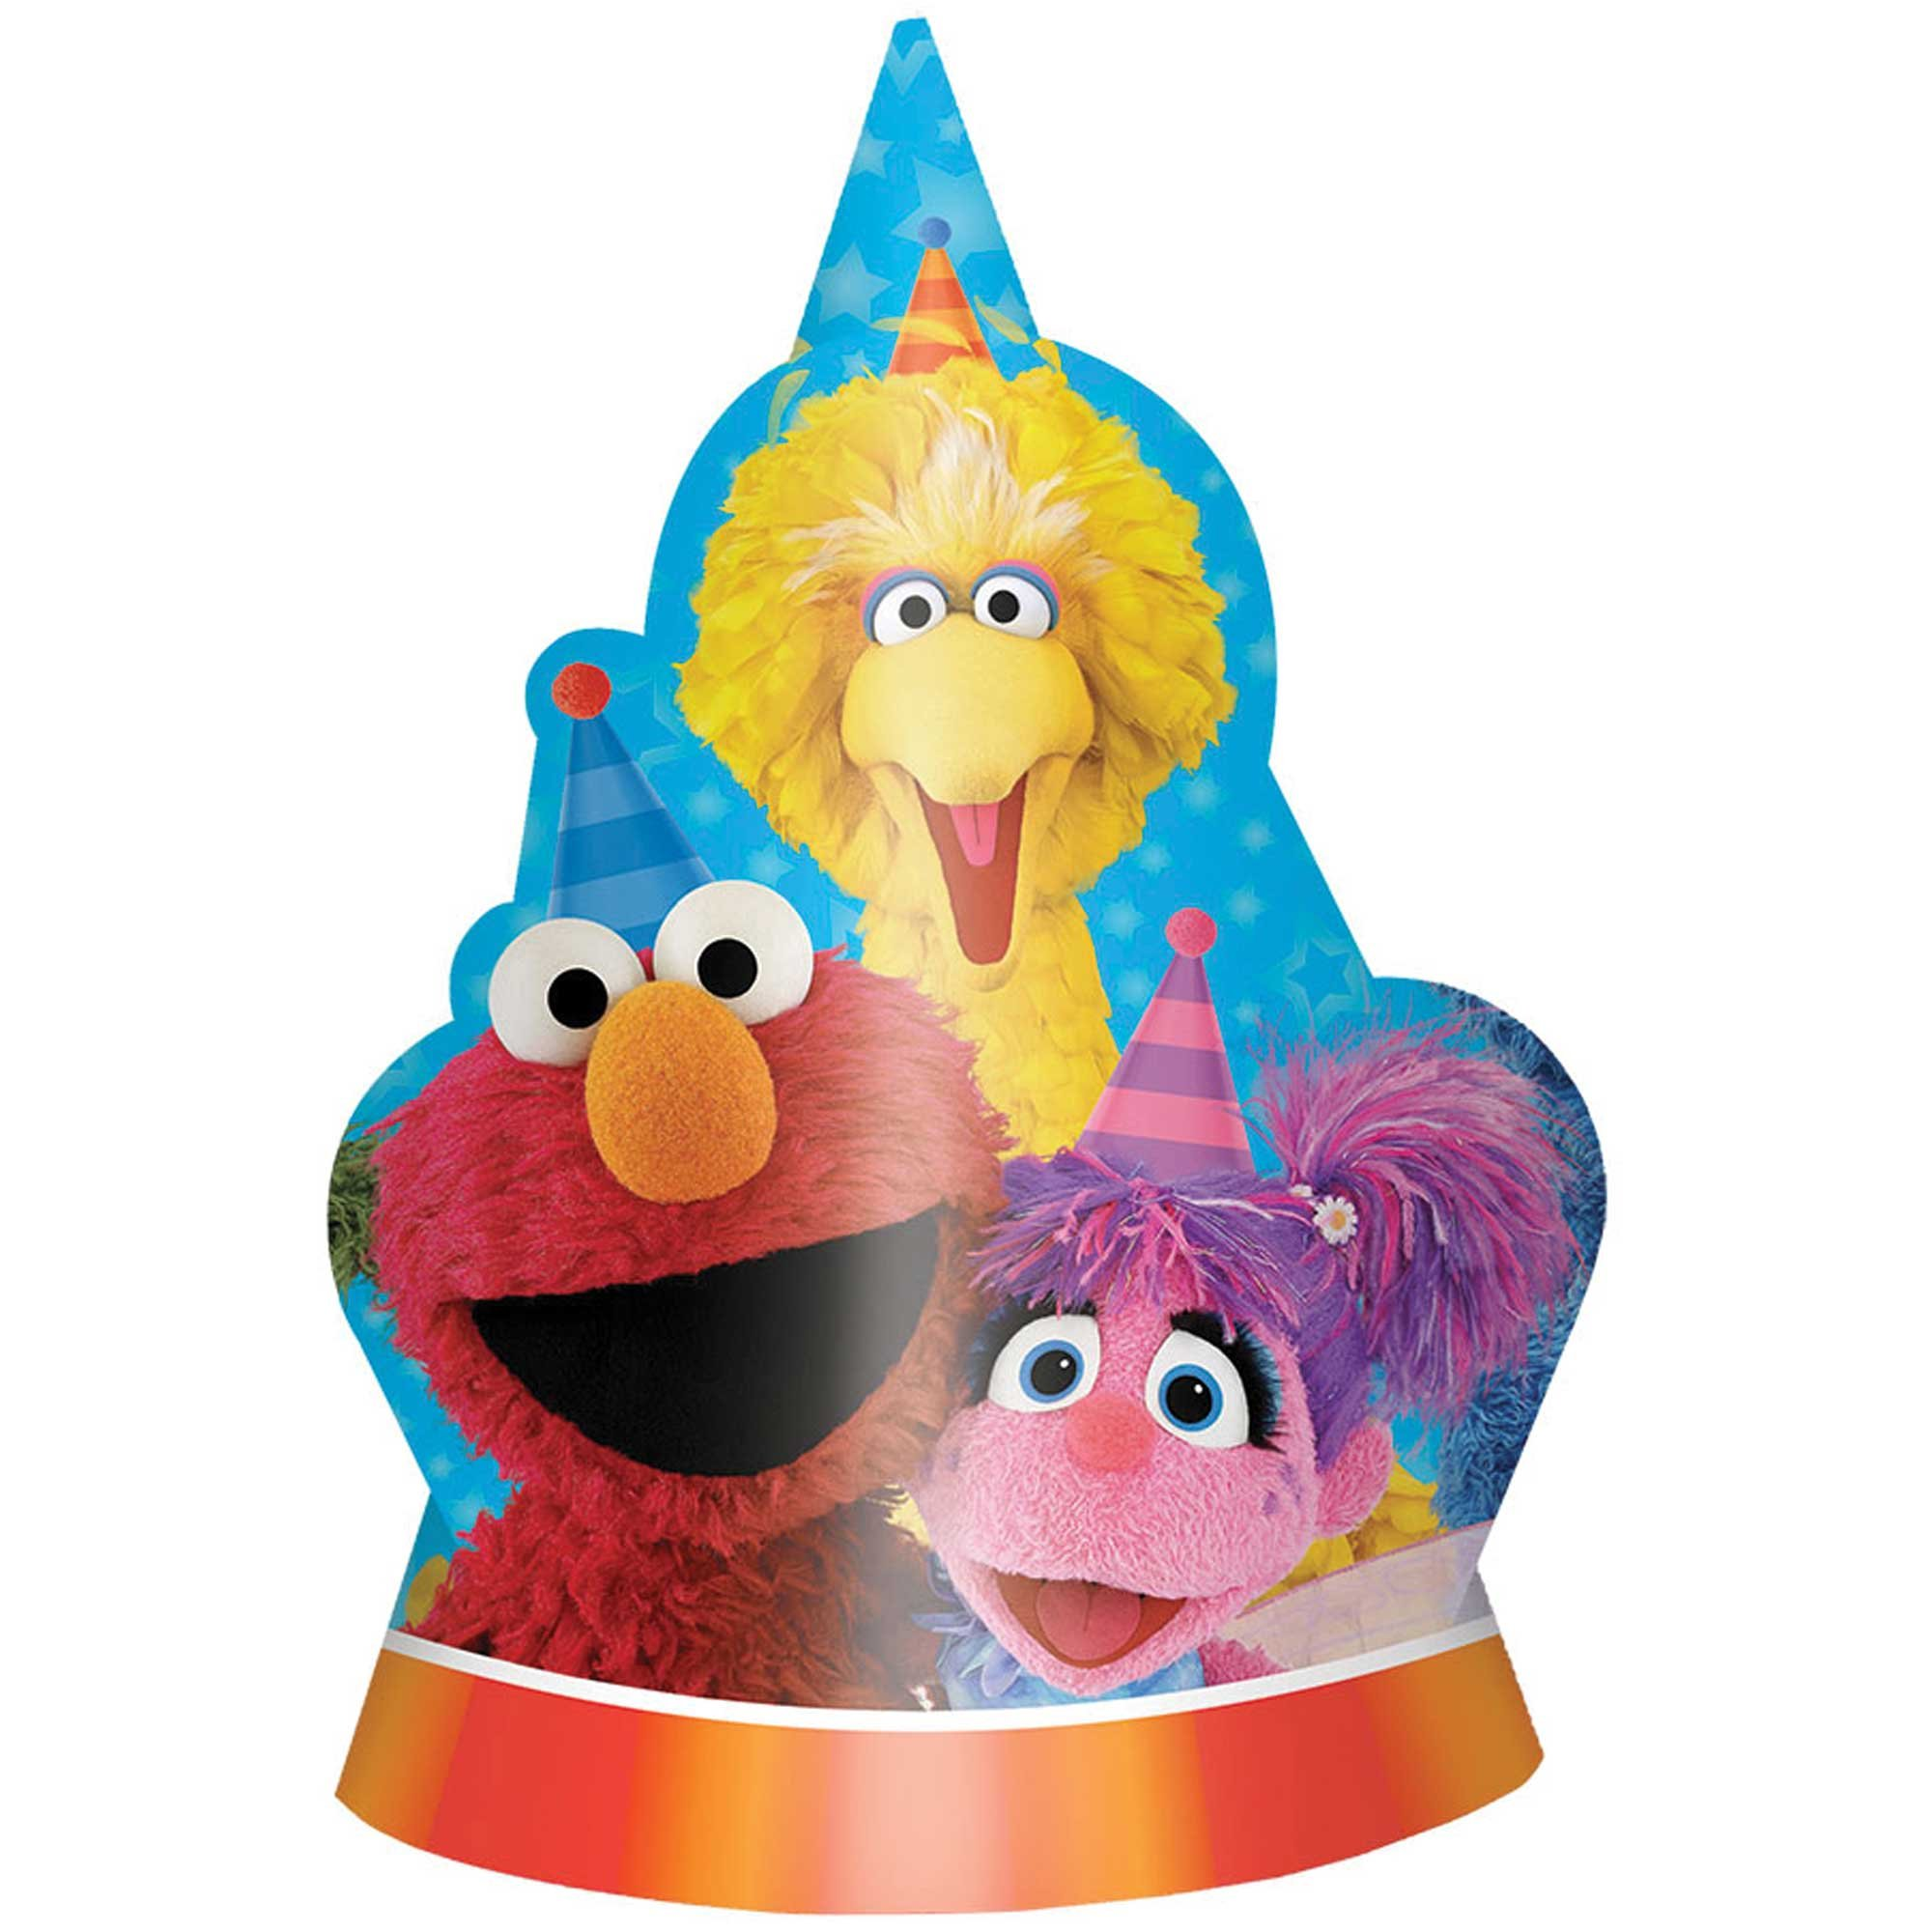 Sesame Street Shaped Cardboard Hats